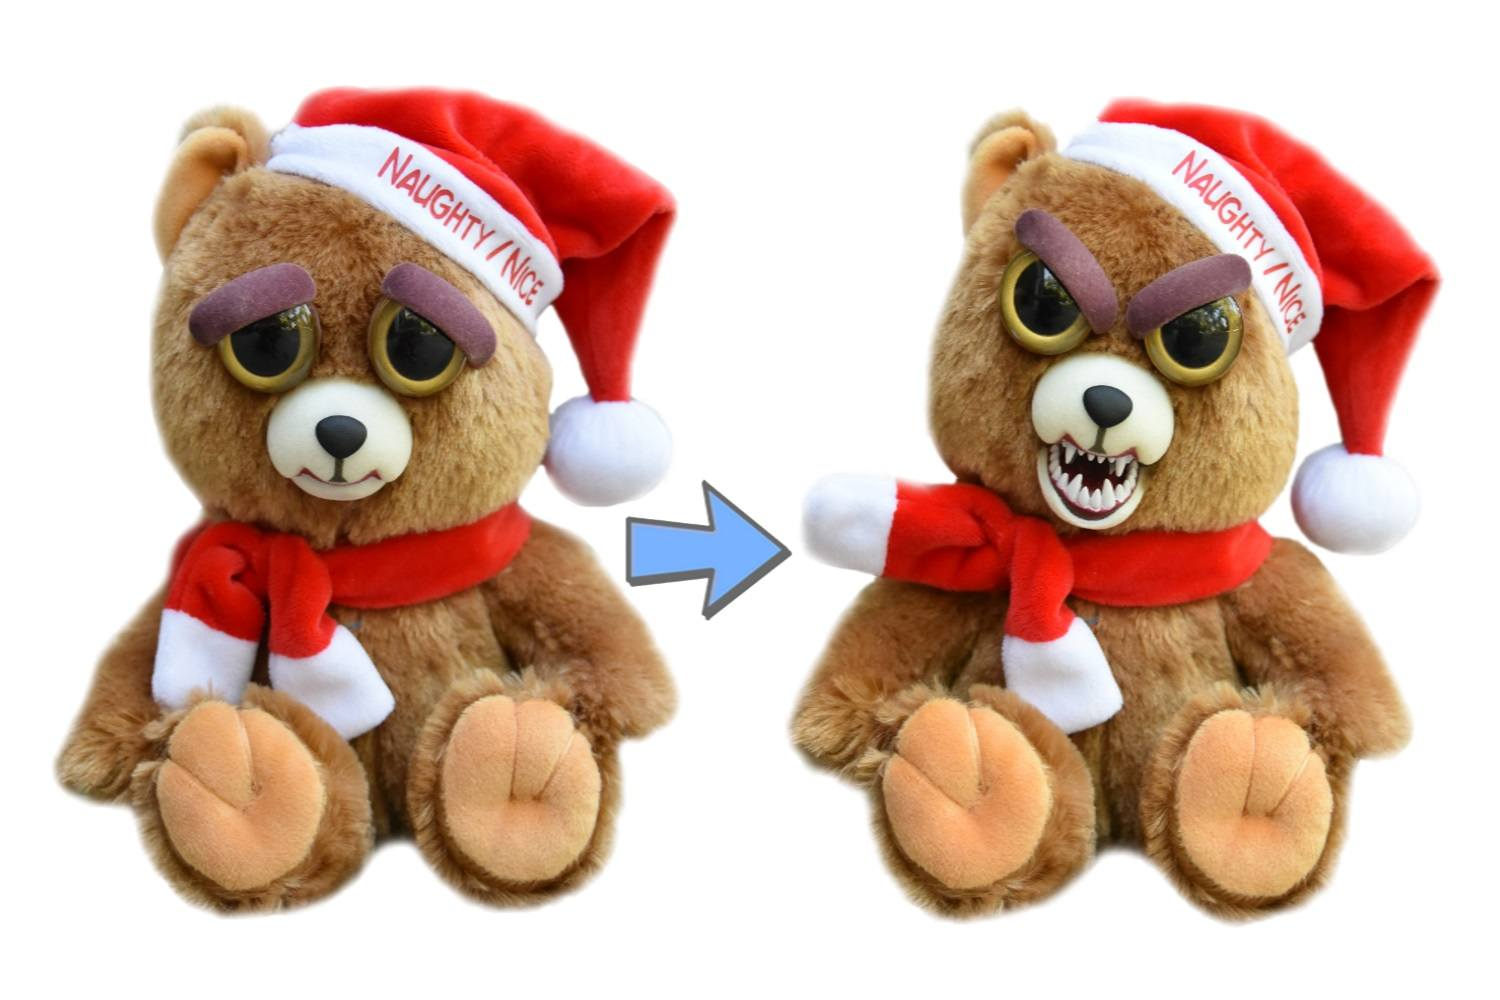 feisty pets plush stuffed animals by william mark many varieties and